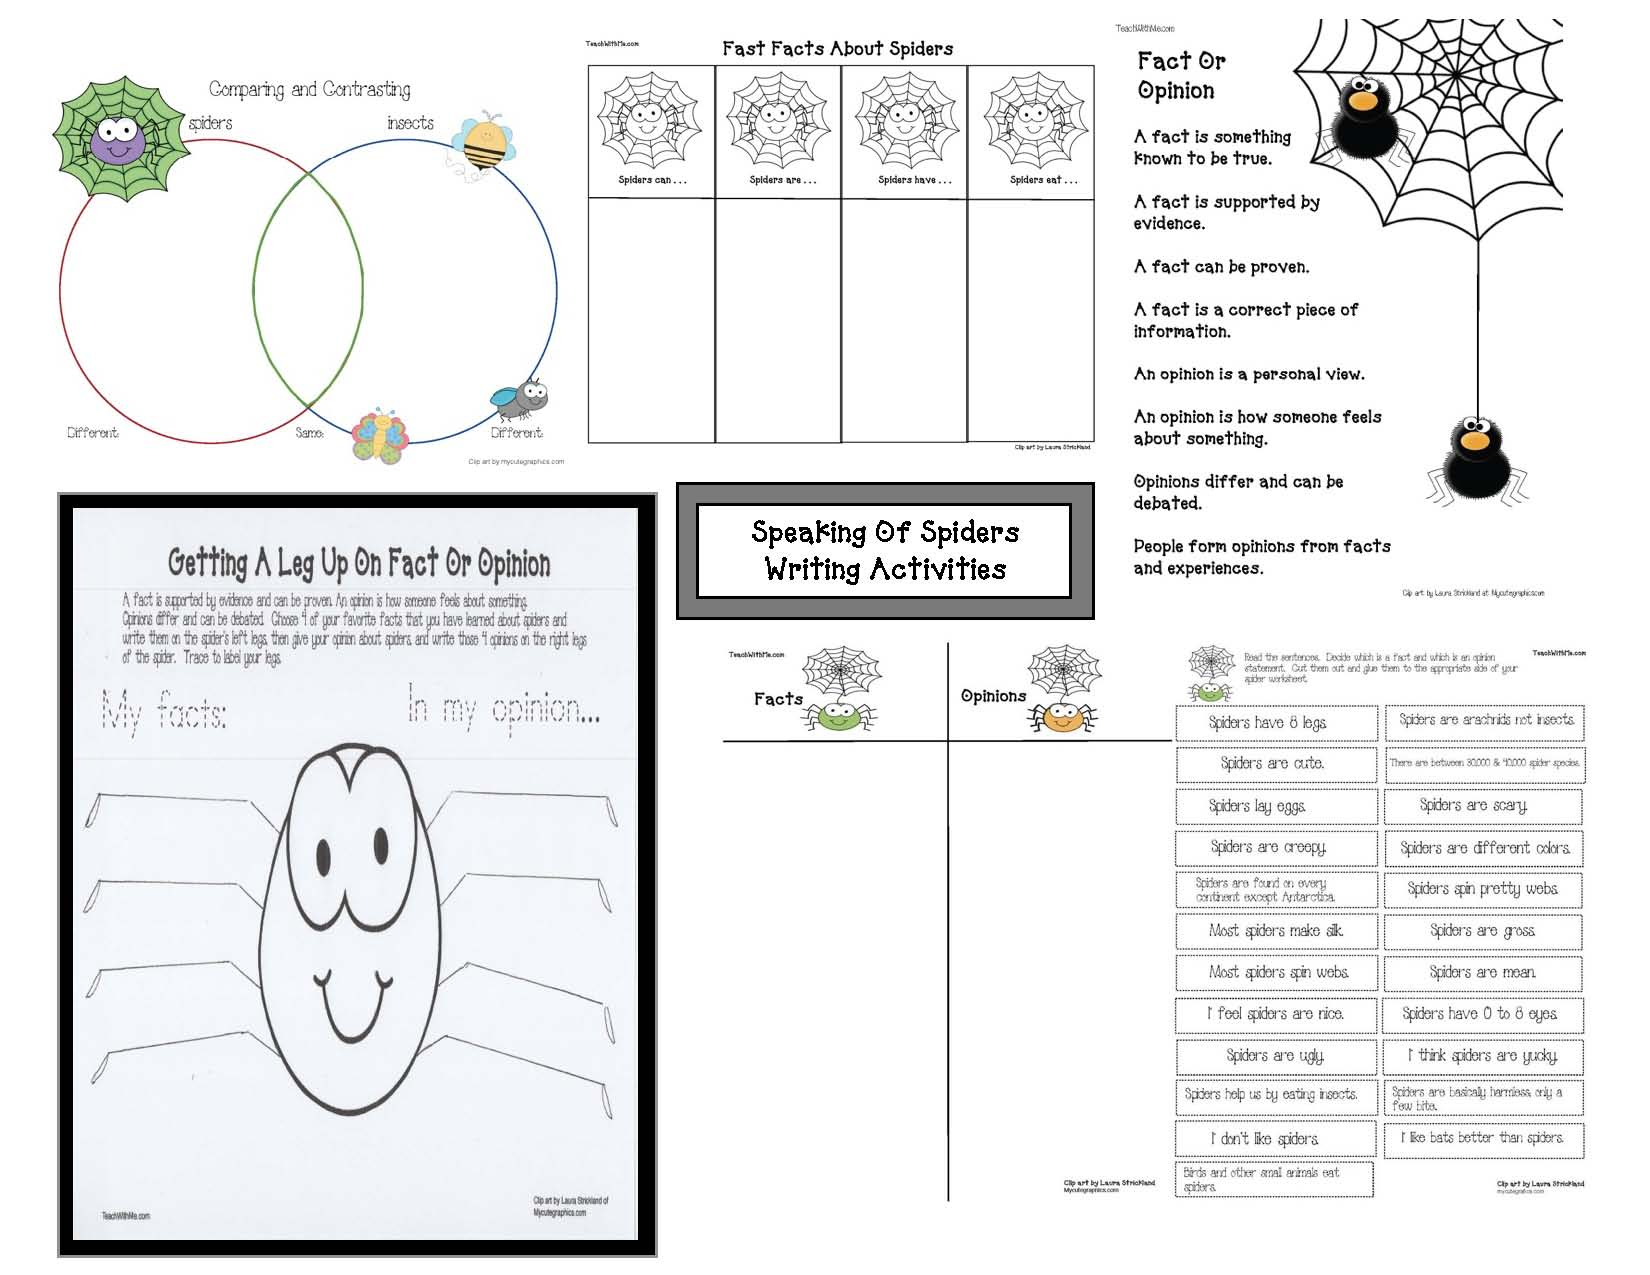 spider activities, spider games, spider crafts, label a spider worksheet, spider mini report graphic organizer, 40 favorite spider books, spider lessons, spider crafts, spider arts and craftes, spider shapes, shape activities, spider writing activities, bat activities, spider and bat venn diagram, venn diagram pattern, venn diagram template,